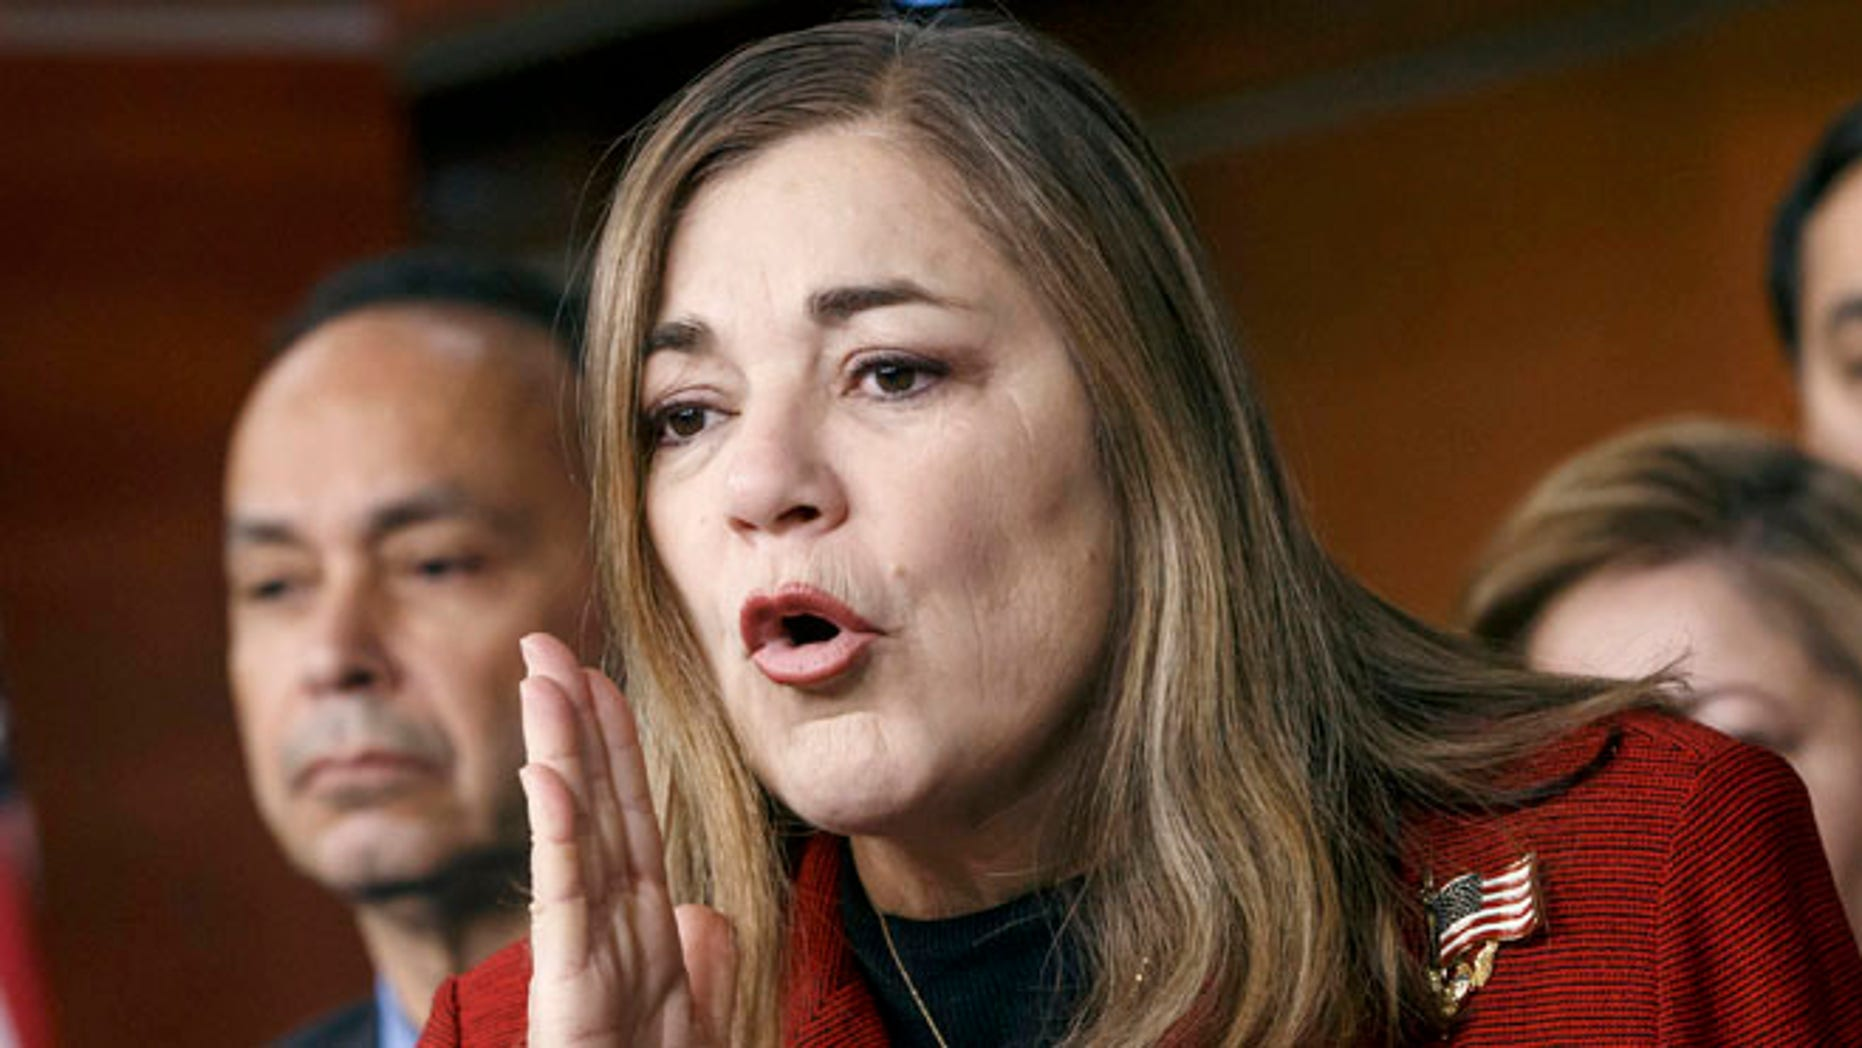 FILE - In this Feb. 13, 2015 file photo, Rep. Loretta Sanchez, D-Calif., responds to questions at a news conference on Capitol Hill in Washington. California Attorney General Kamala Harris would love to oust her strongest rival, fellow Democrat Sanchez, in the primary for California's open U.S. Senate seat, but it's more likely the two will face off again in November. With time running short before the June 7 primary, it appears the two Democrats will be the top vote-getters, presenting a reminder of the waning influence of Republicans in the nation's most populous state. (AP Photo/J. Scott Applewhite, File)